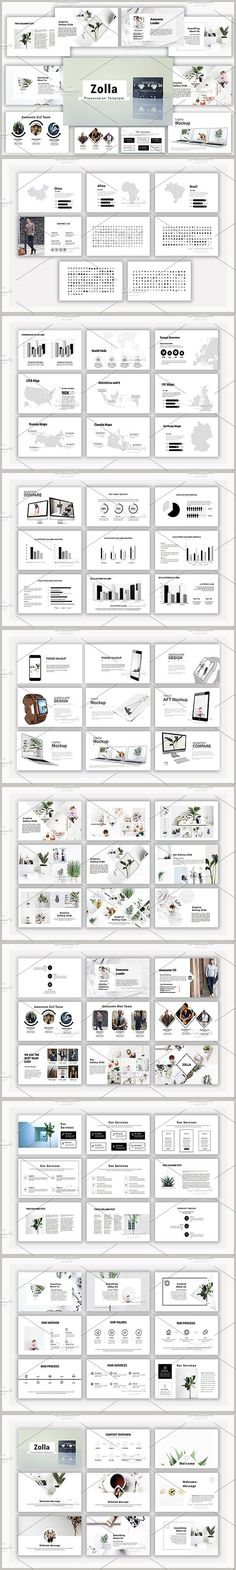 Zolla Powerpoint Template. Presentation Templates